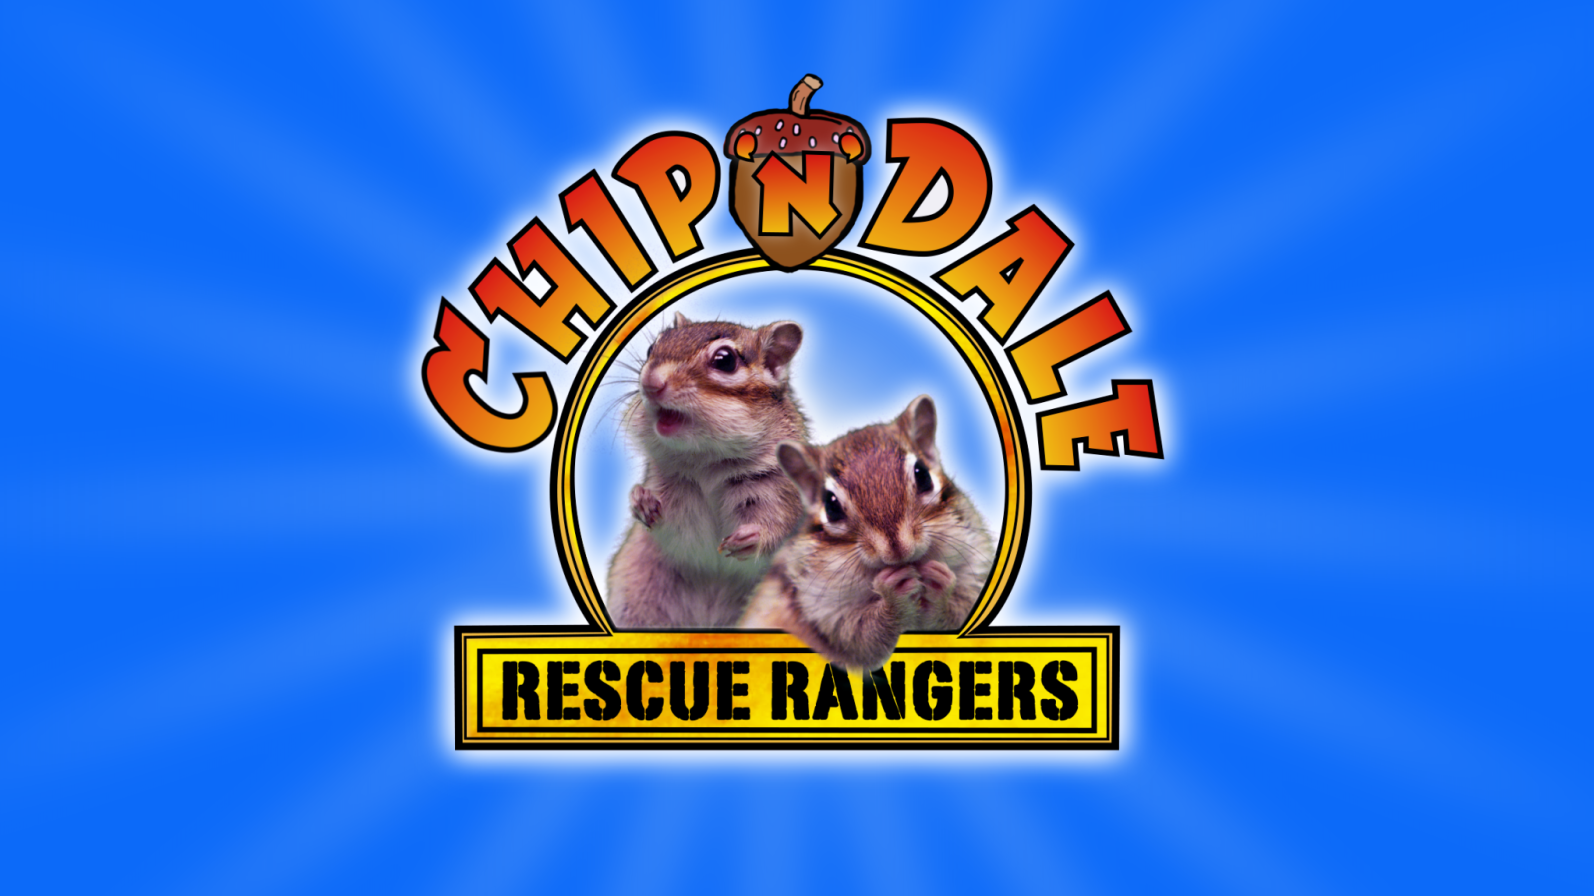 Chip 'n' Dale Rescue Rangers With Real Chipmunks - Oh My Disney